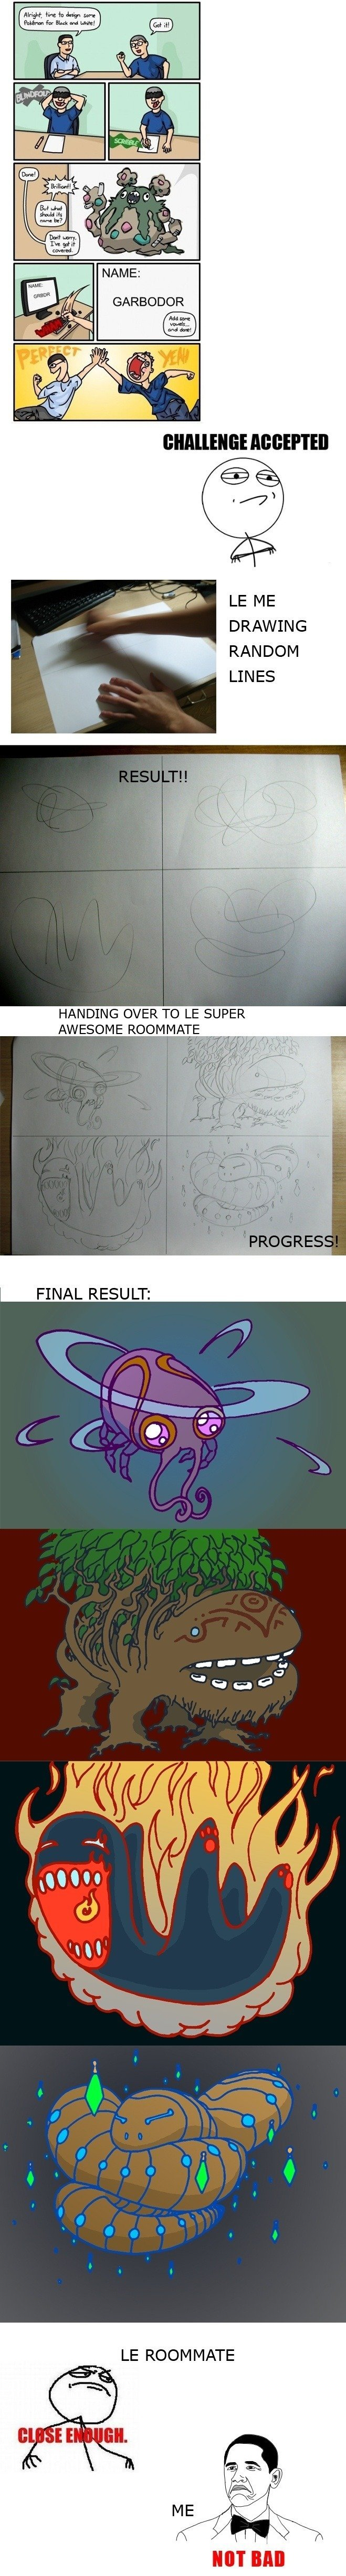 """Pokemon challenge accepted. . DRAWING RANDOM LINES HANDING OVER TO """" _P. AWESOME ROOMMATE FINAL RESULT: ROOMMATE. le,le,le,le Please no,"""